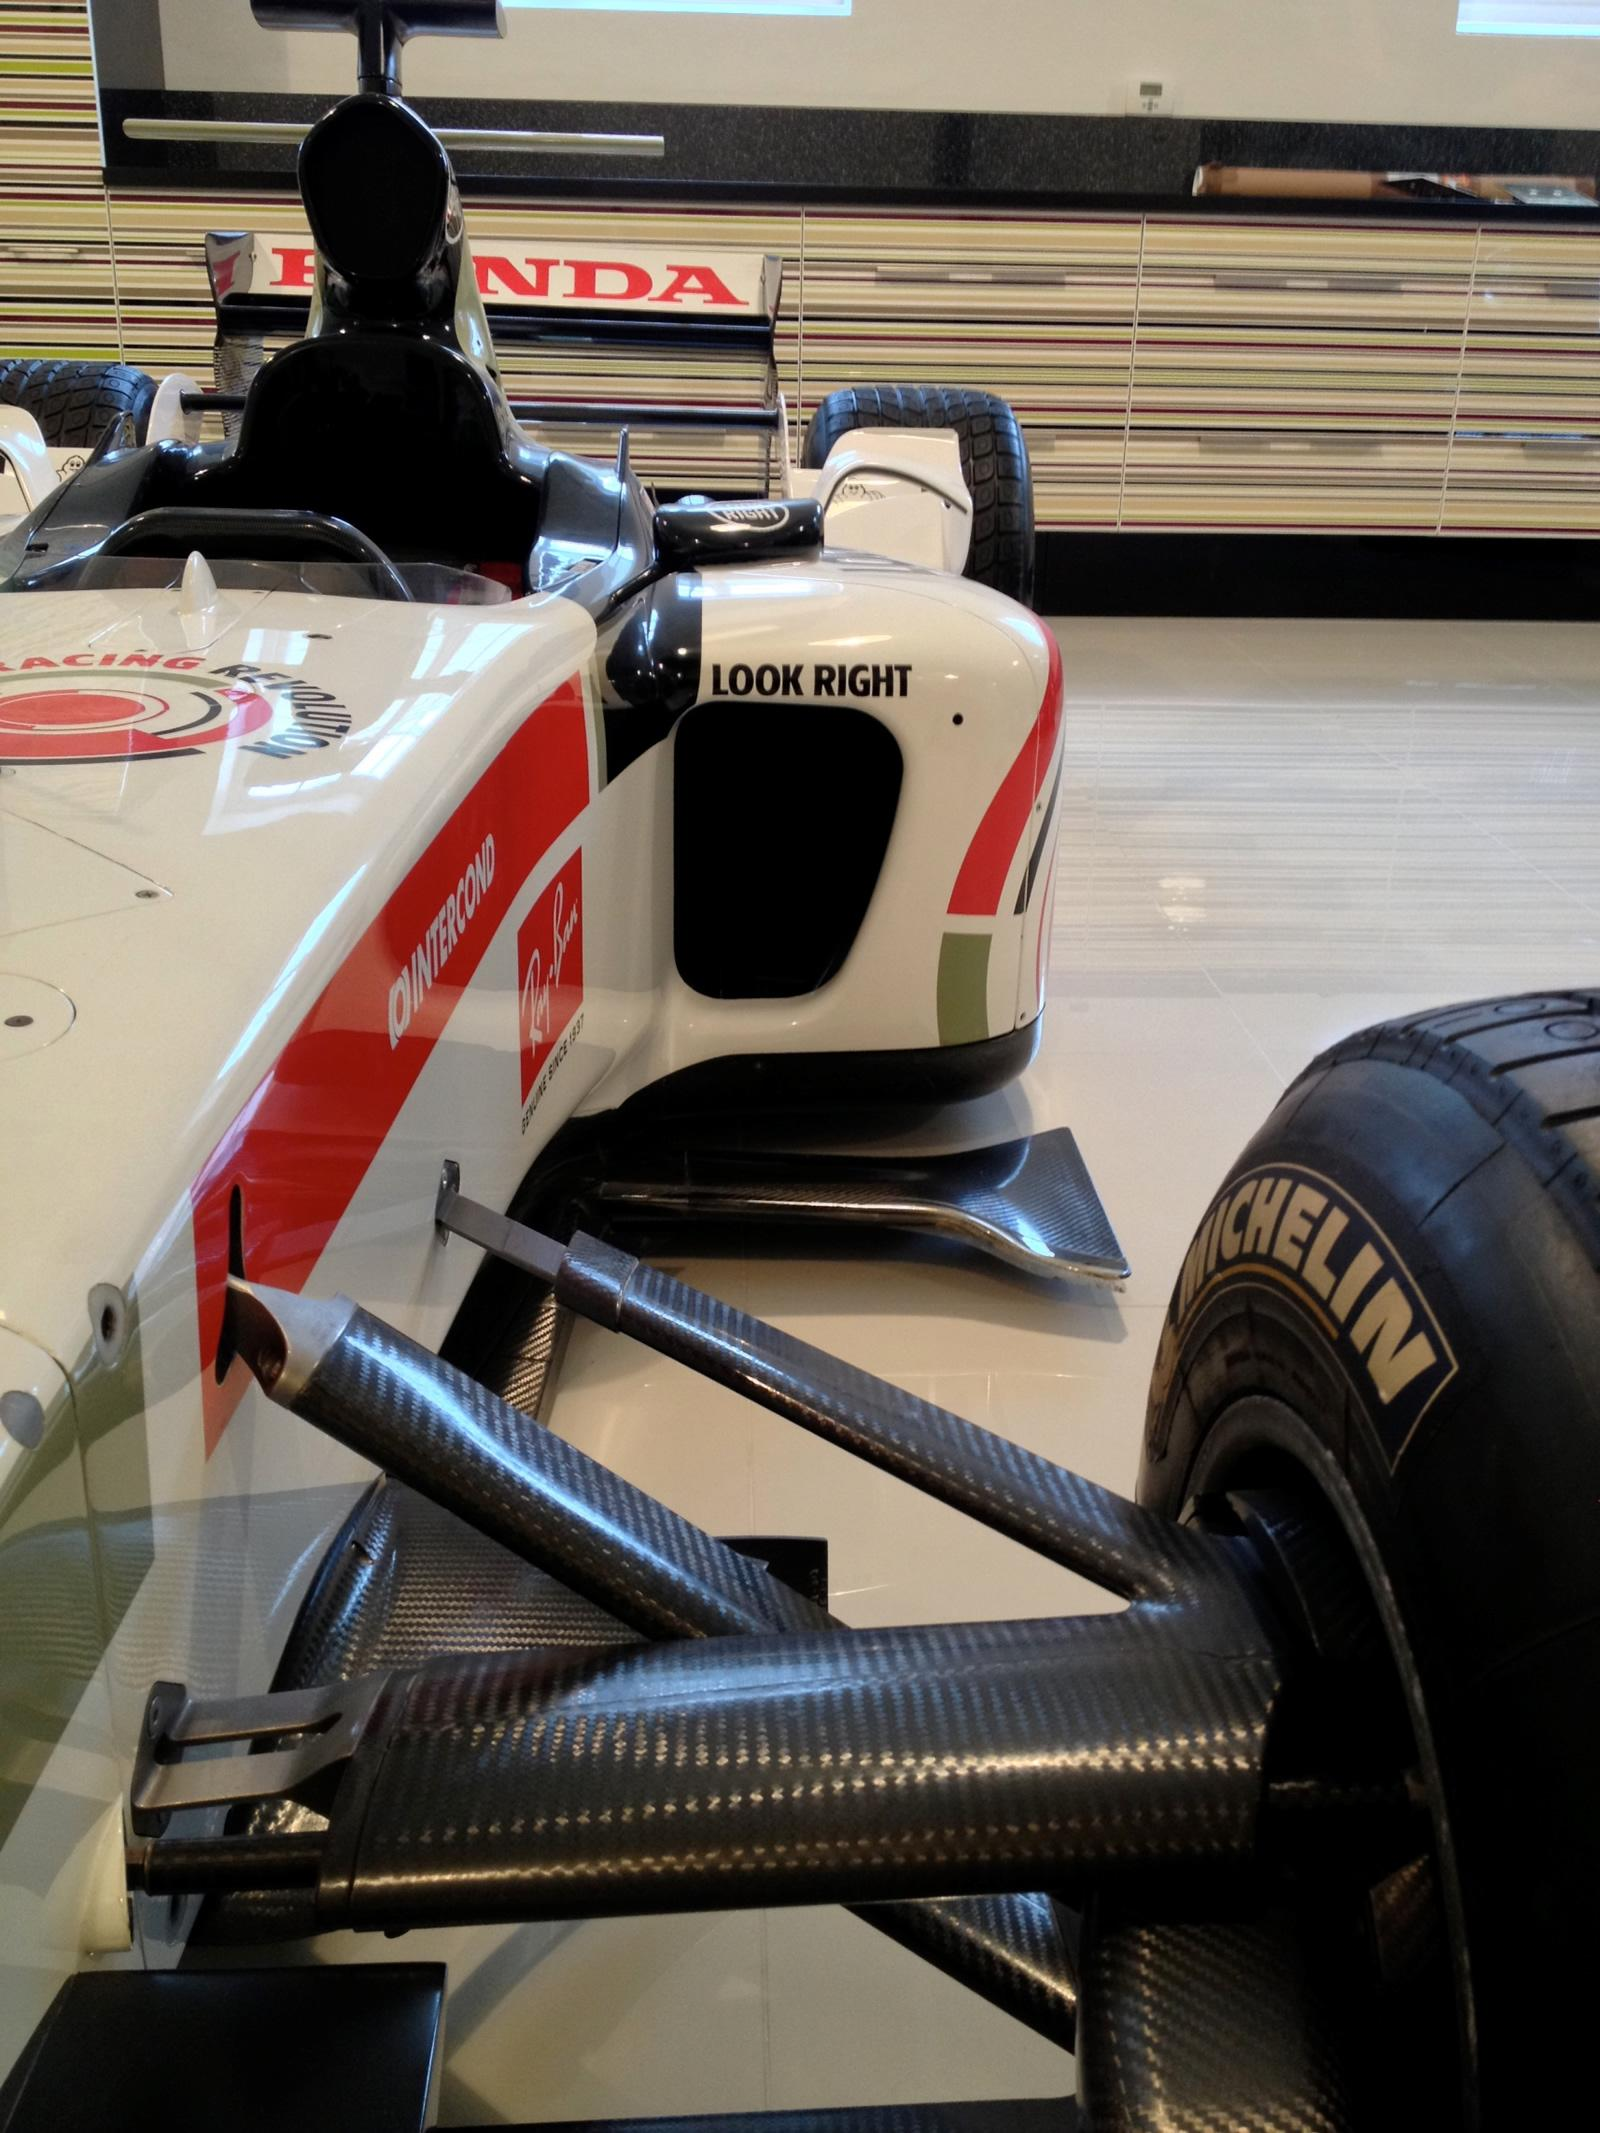 Jenson Button S Bar Honda 006 Formula 1 Car On Sale For 163